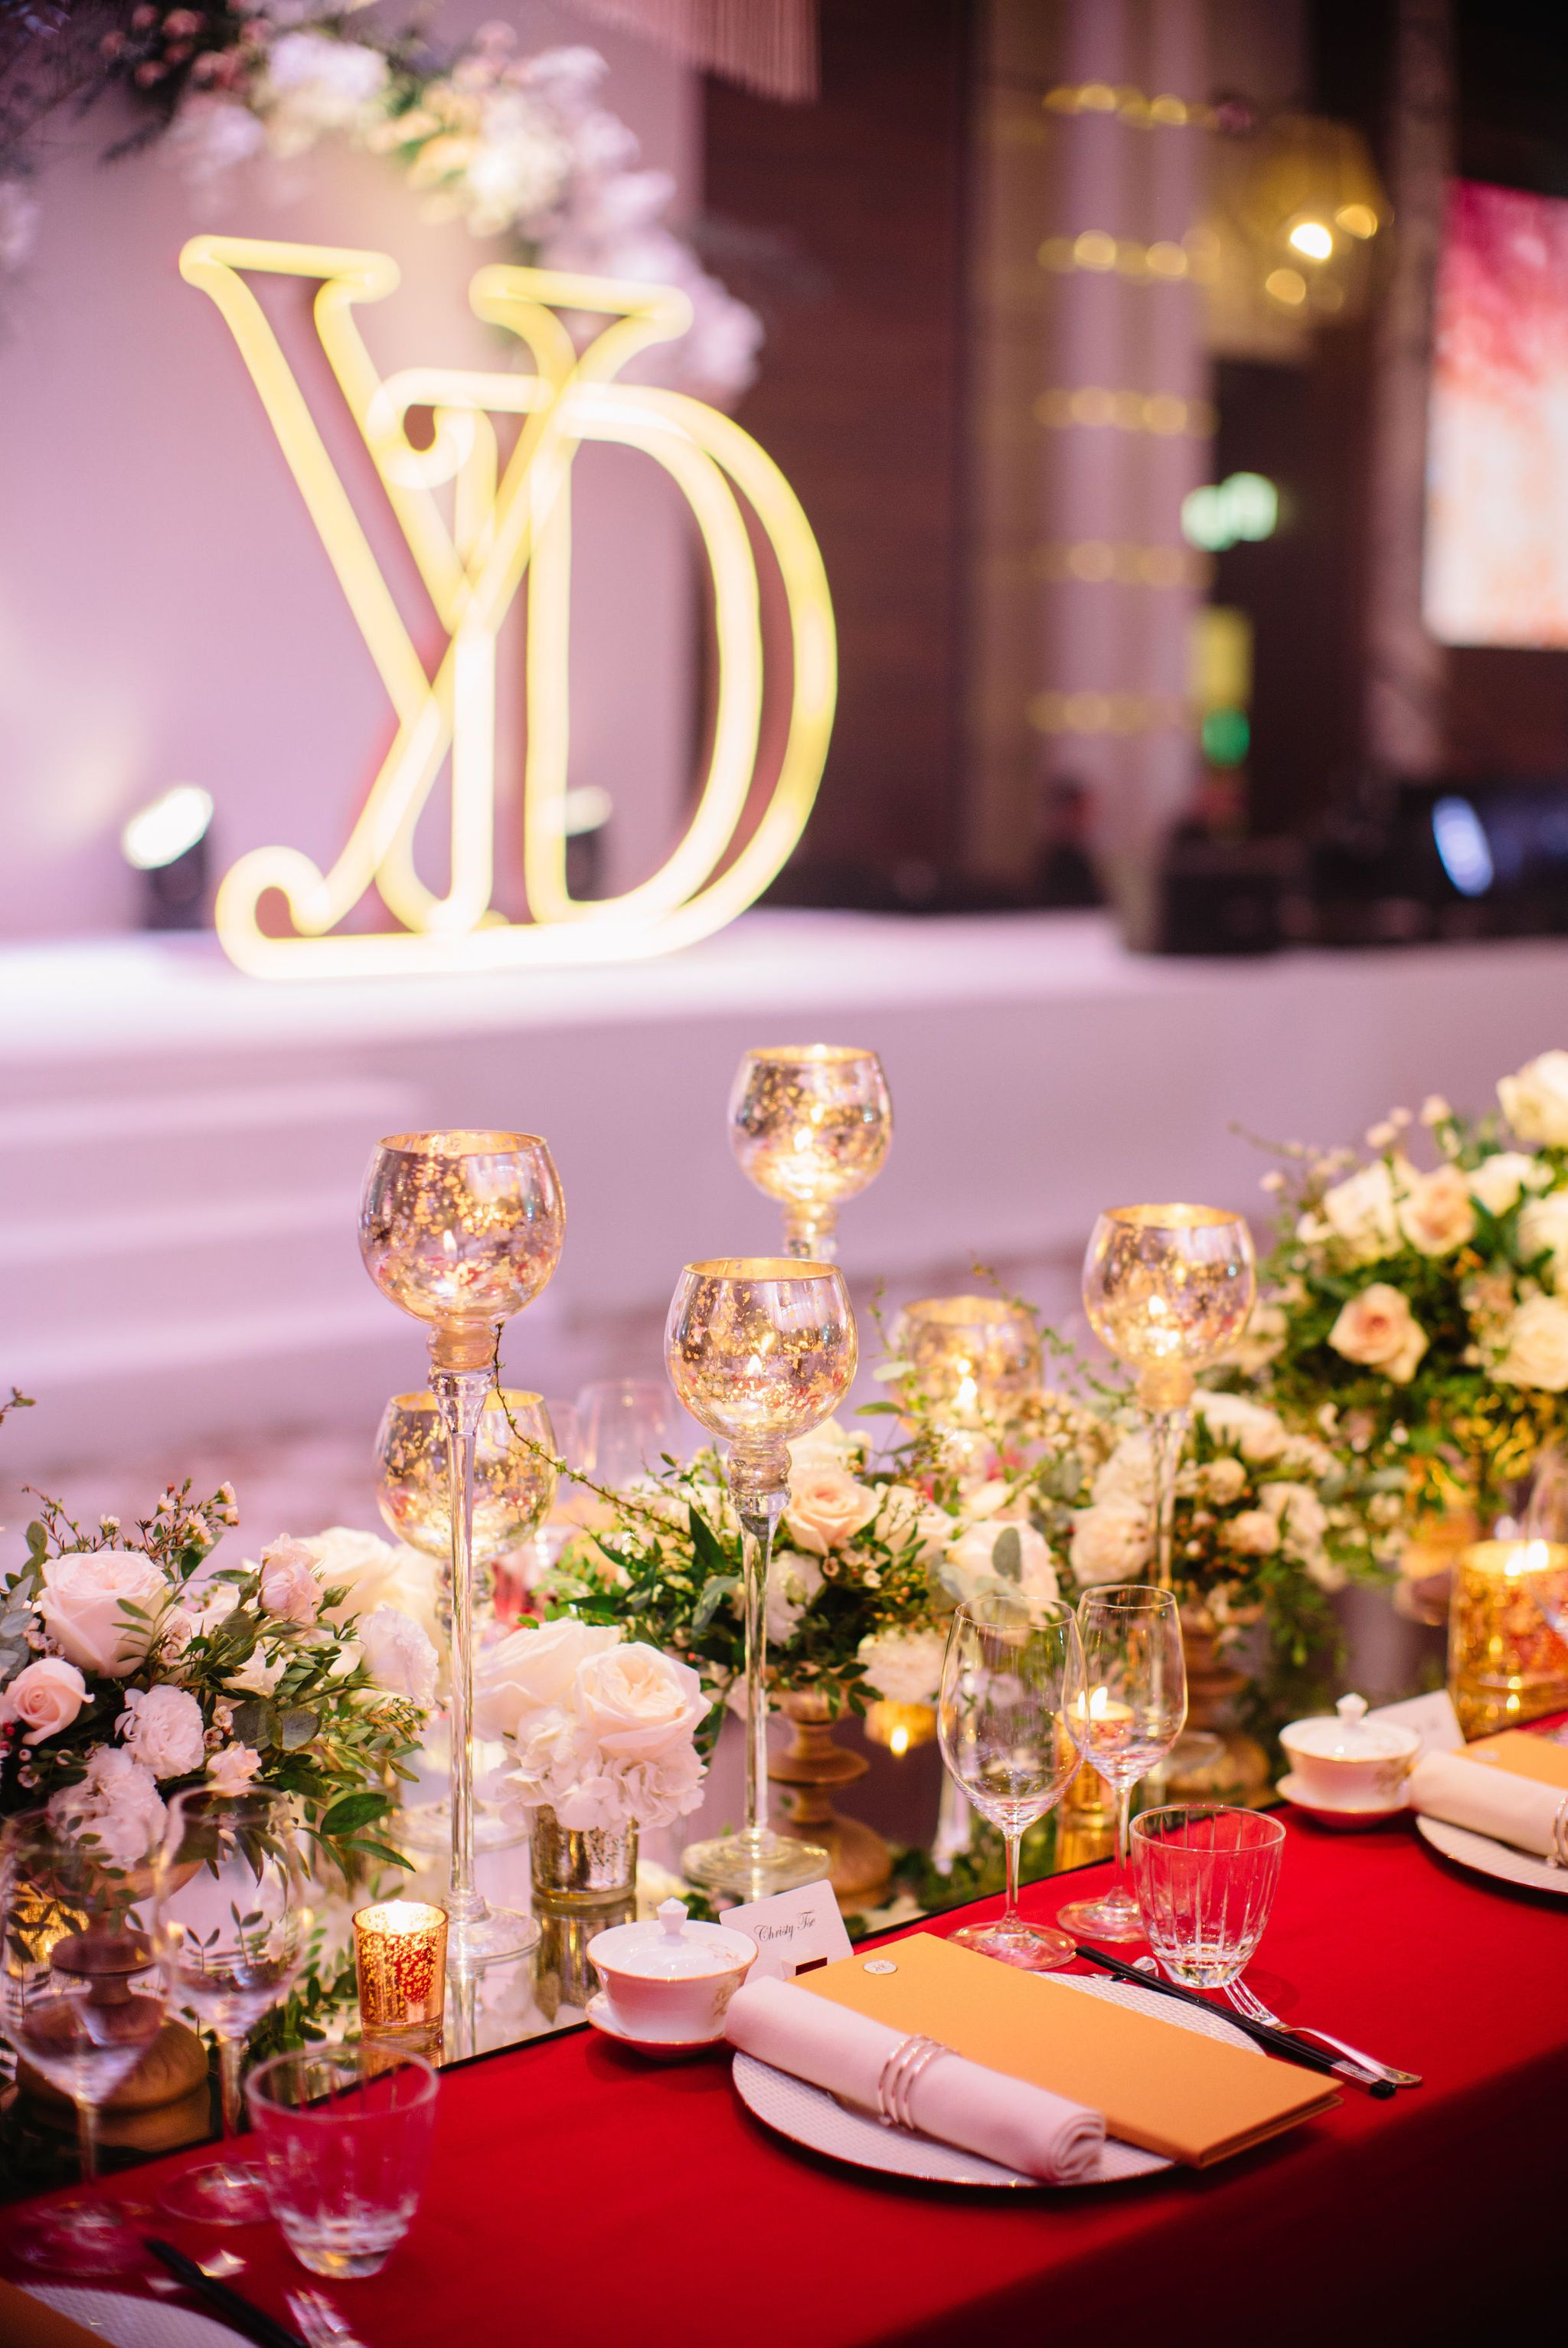 Really Miss This Long Head Table With 24 Seats In The Wedding Banquet Last Year In 2020 Wedding Decorations Wedding Wedding Stylist